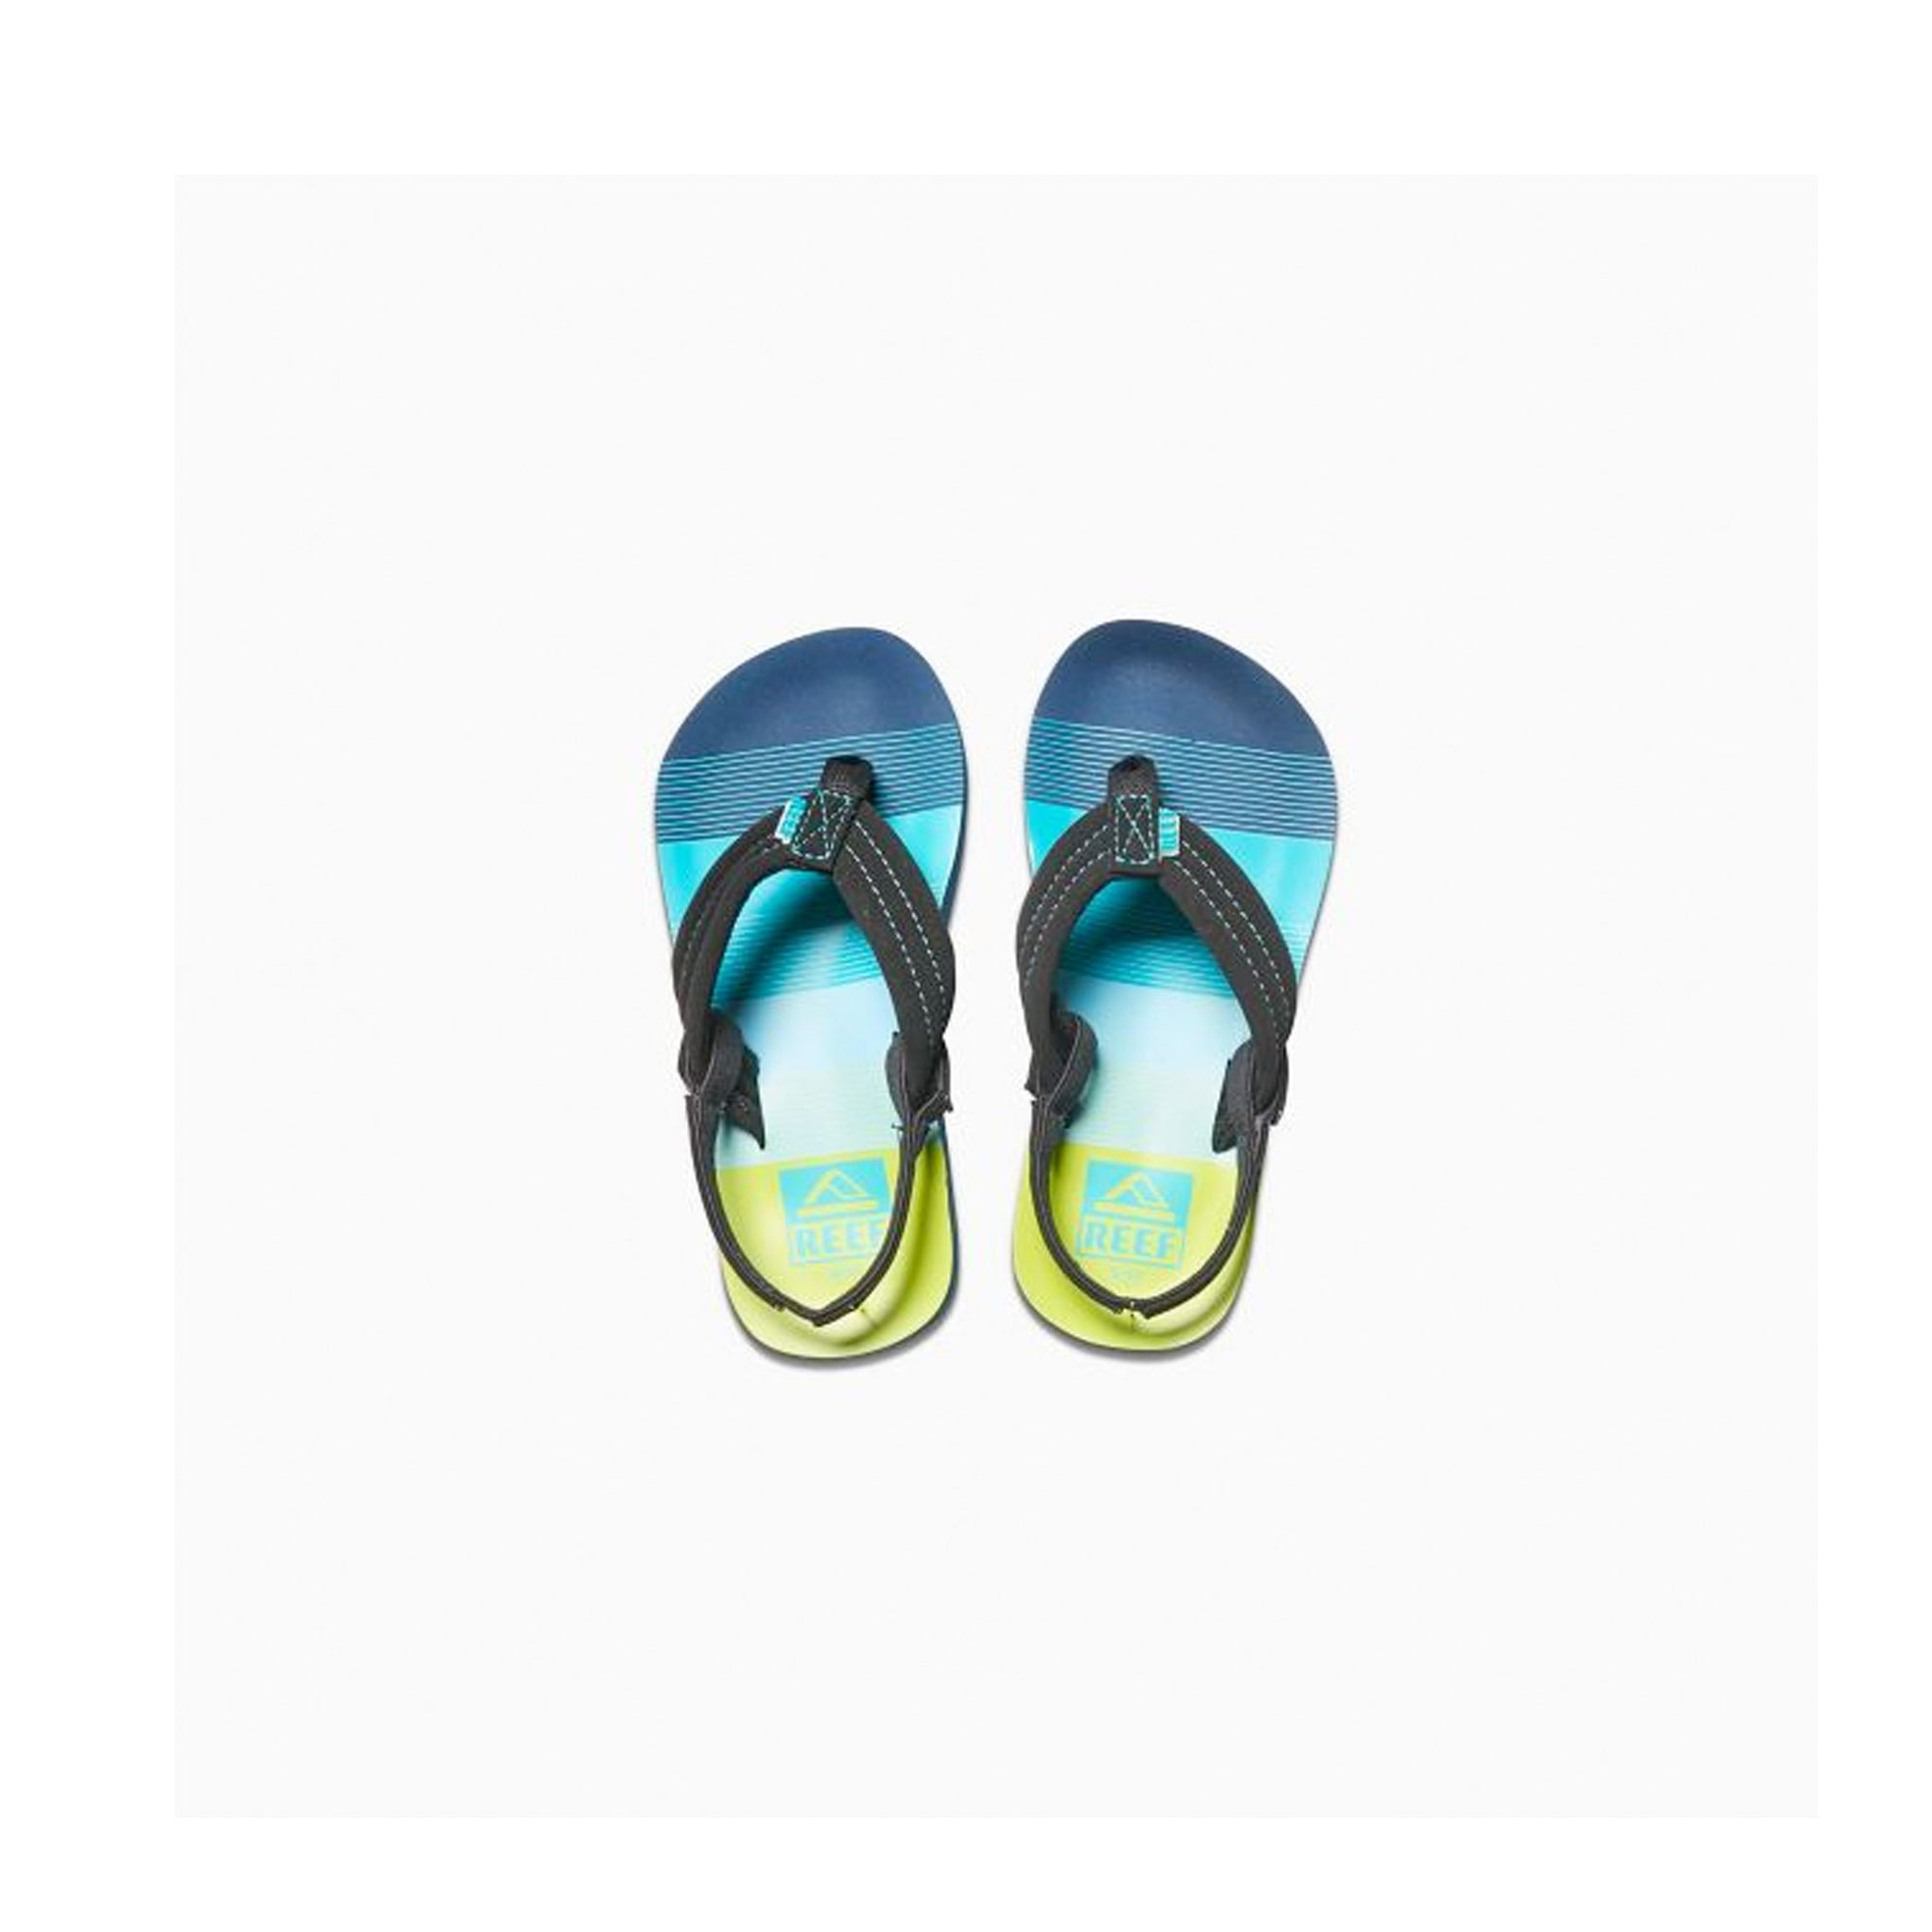 Reef Little Ahi Youth Boy's Sandals